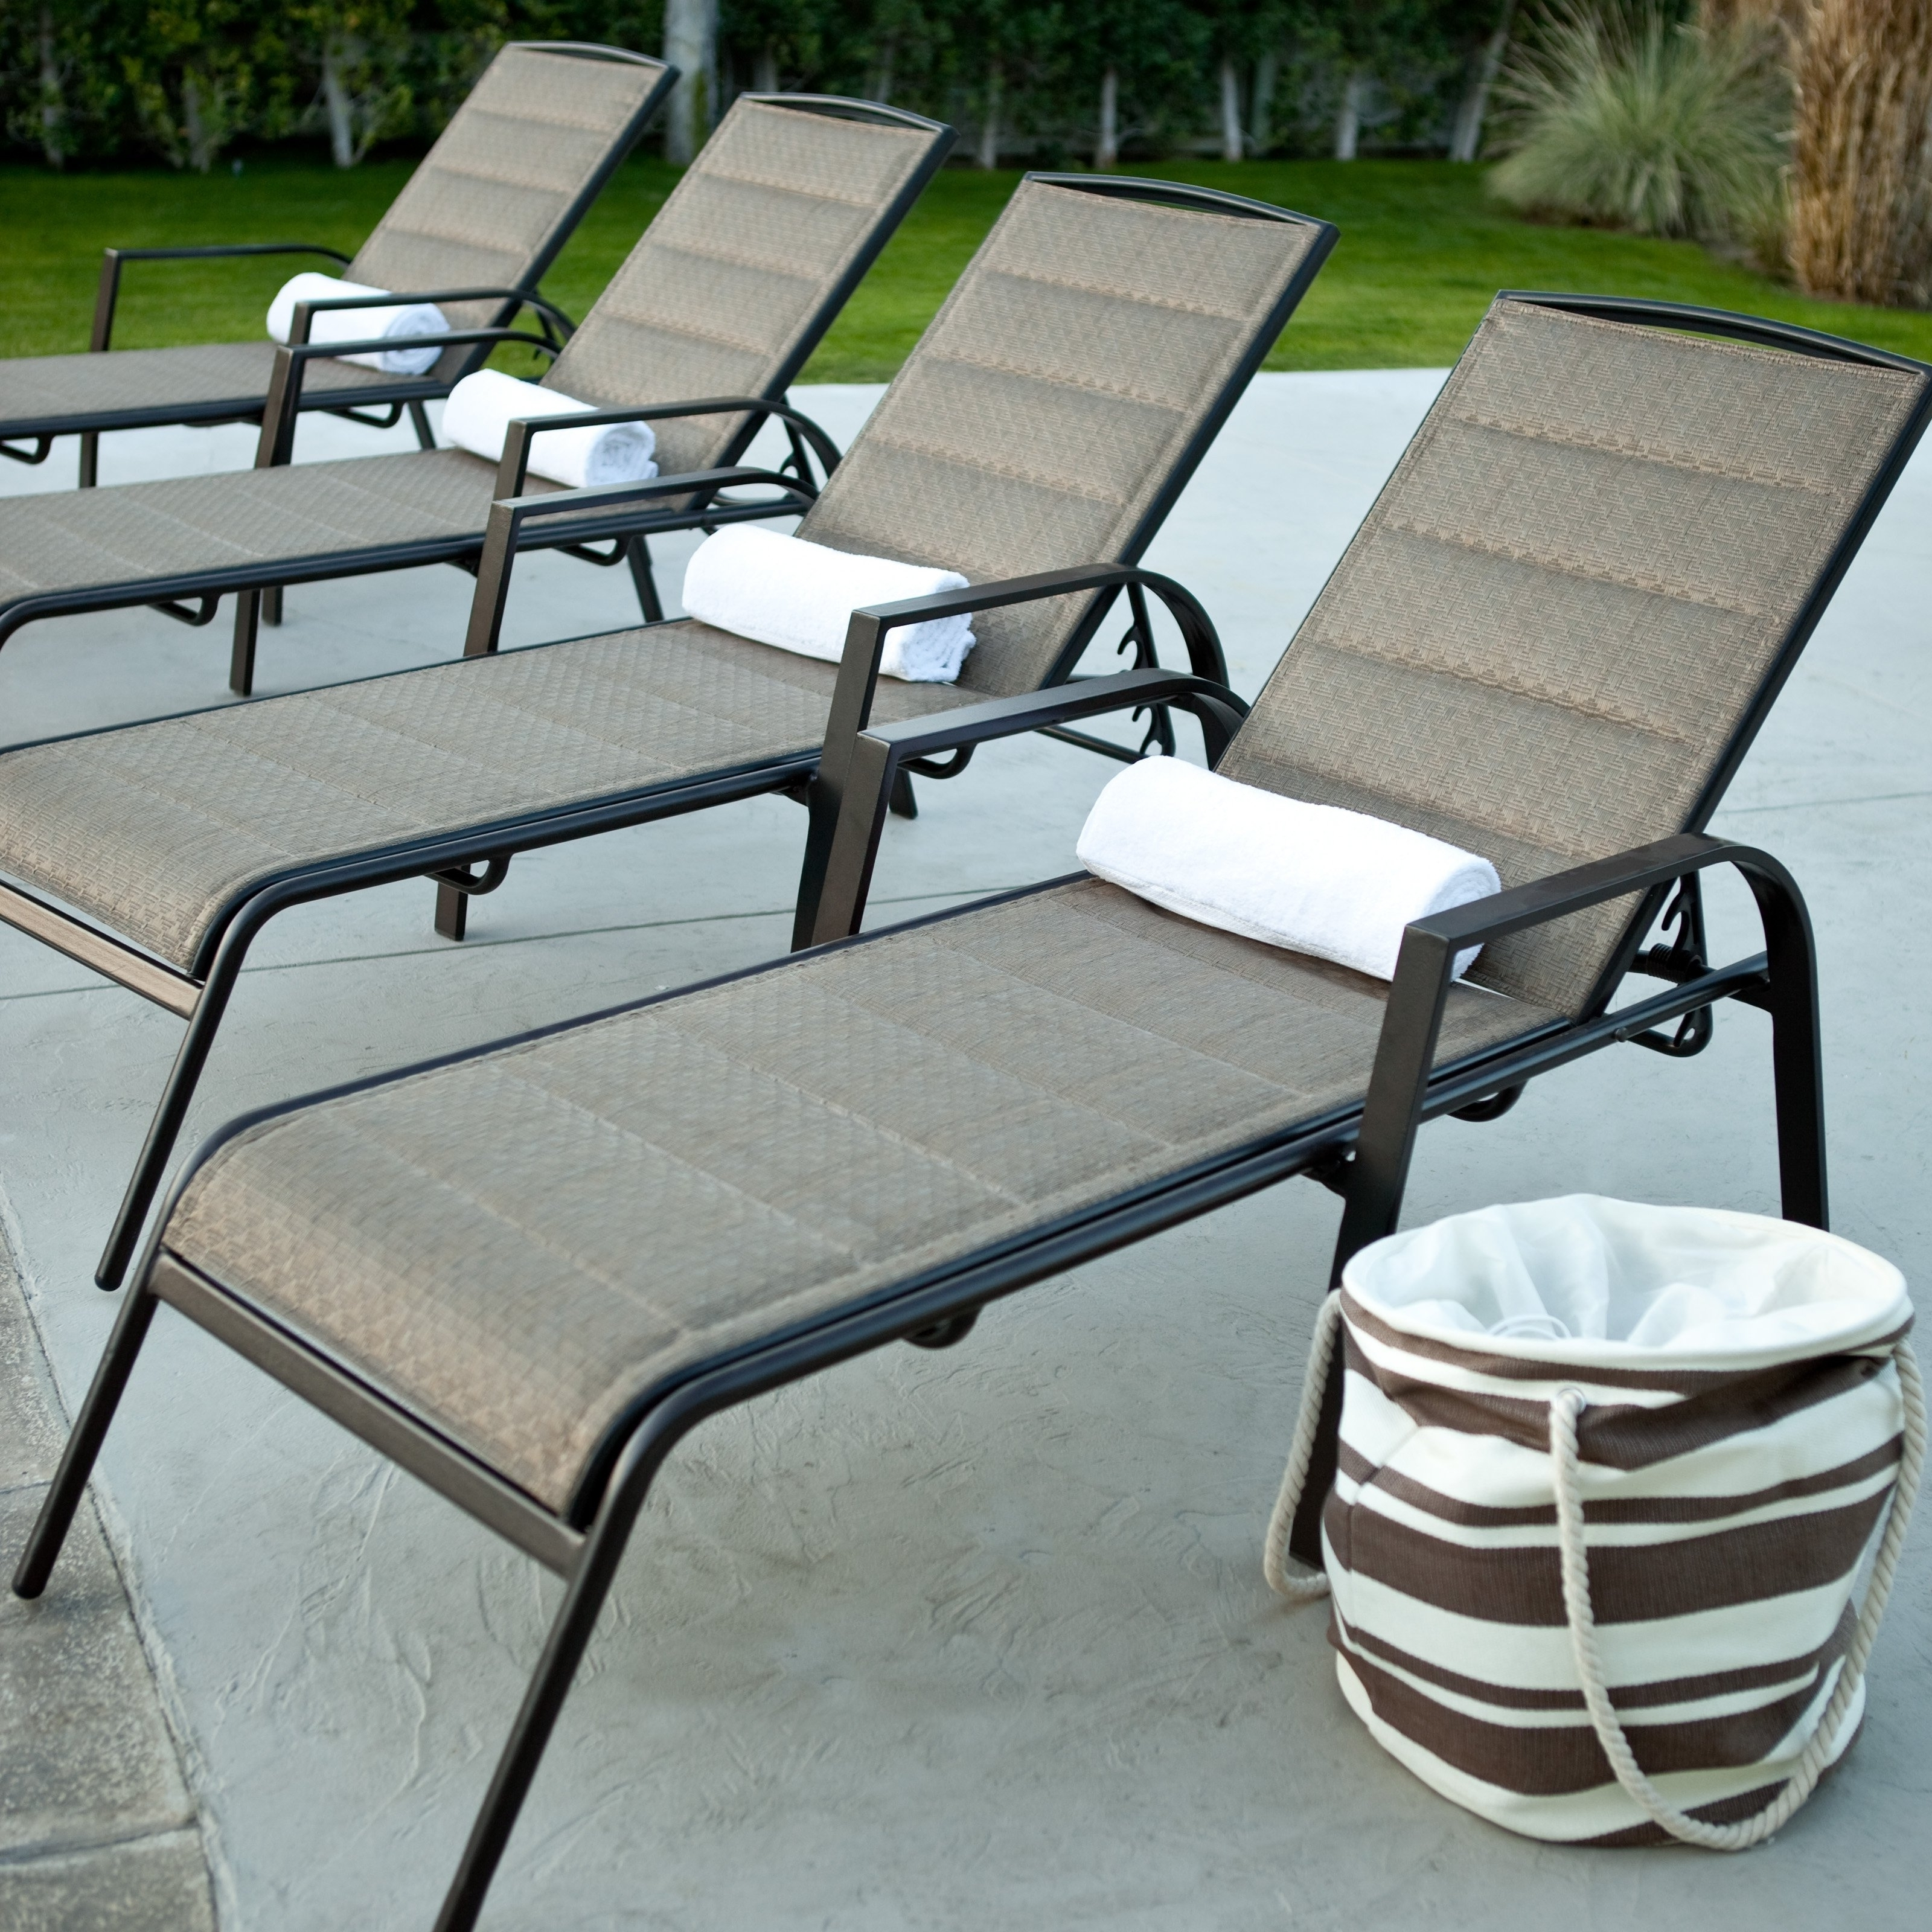 Most Popular Patio Chaise Lounge Clearance With Regard To Enjoy Afternoon With Patio Chaise Lounge — Cookwithalocal Home And (View 5 of 15)